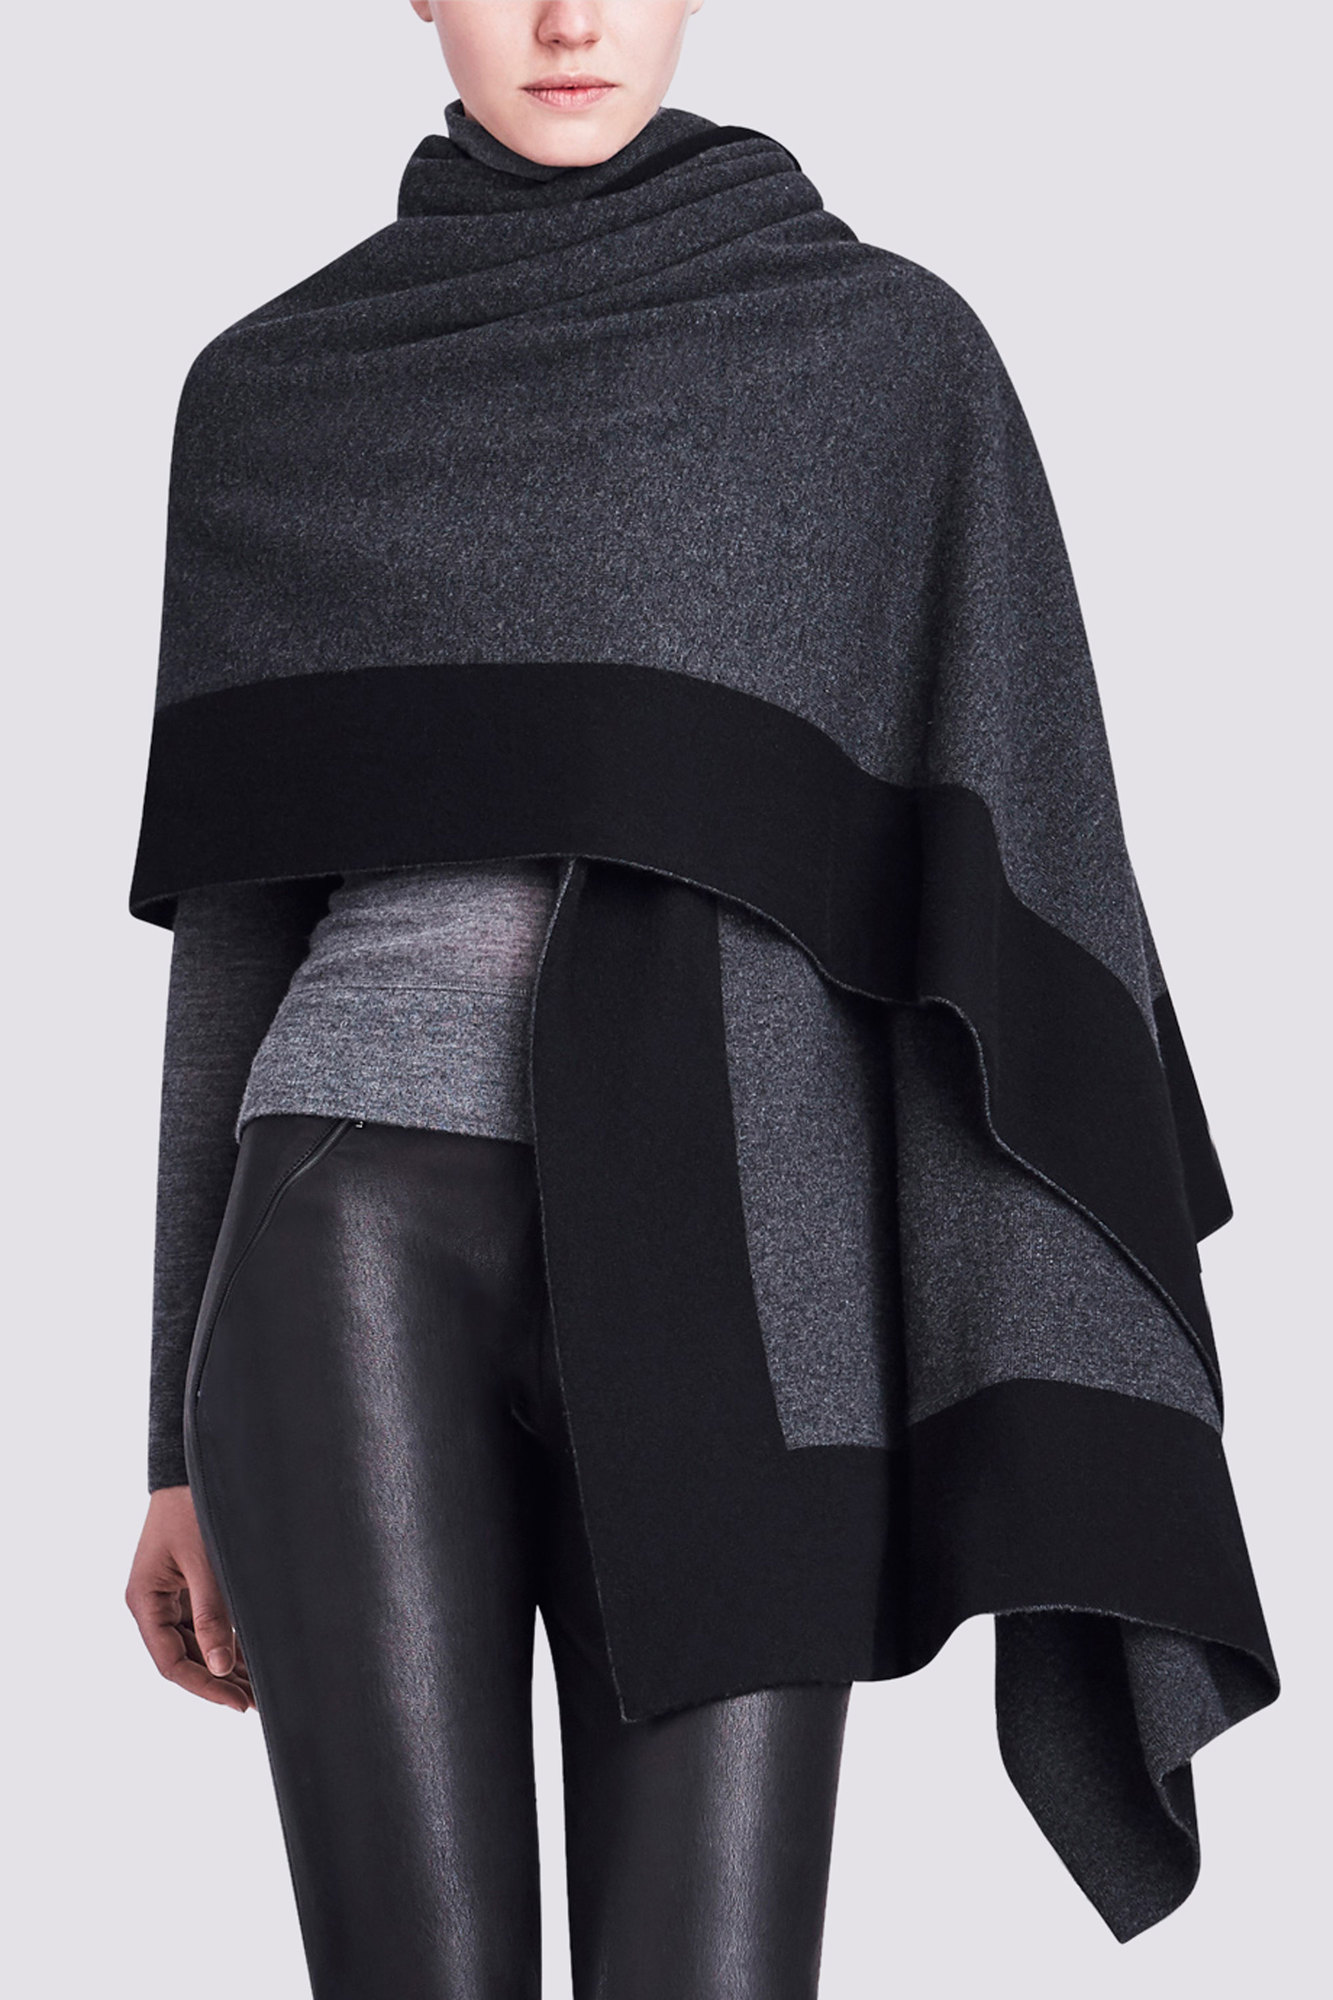 $100 Off $400Sitewide AND 40% Off Select Styles @ Elie Tahari